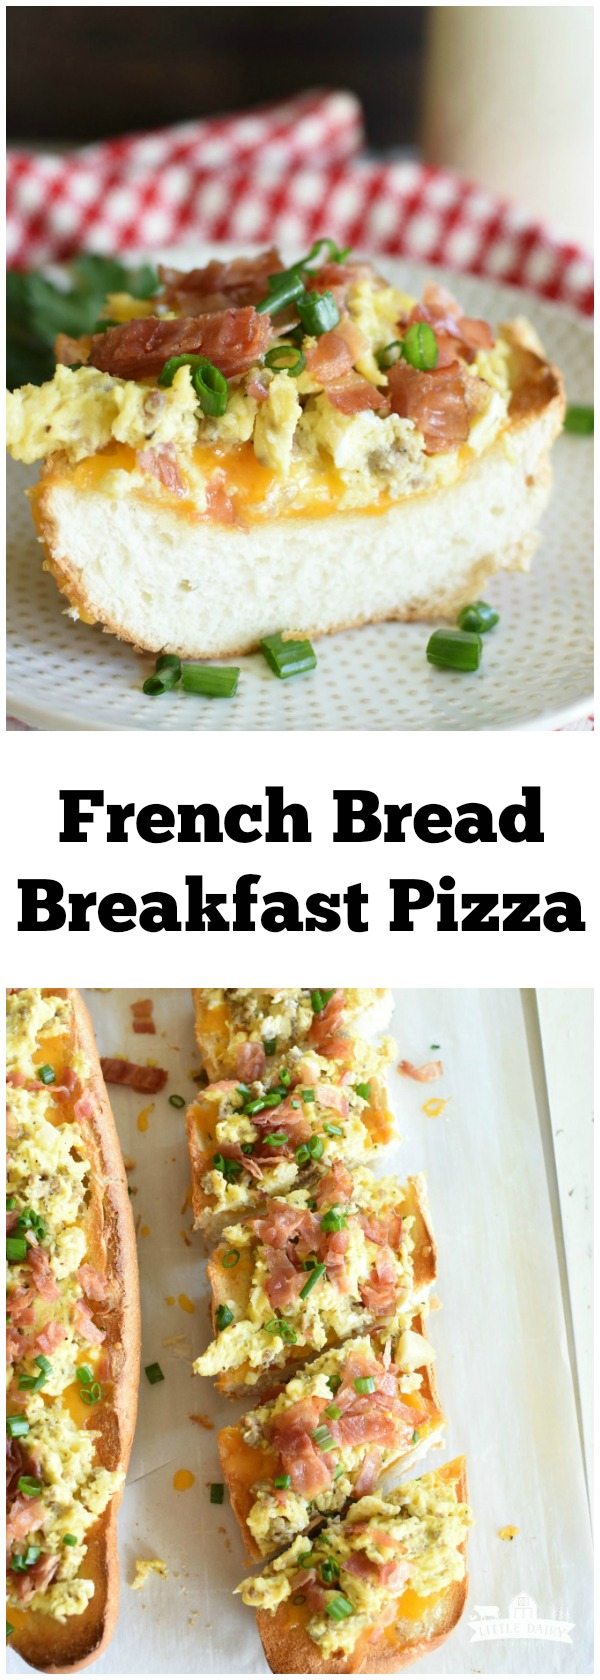 French Bread Breakfast Pizza Is Quick And Easy Recipe That Only Uses A Few Ingedients